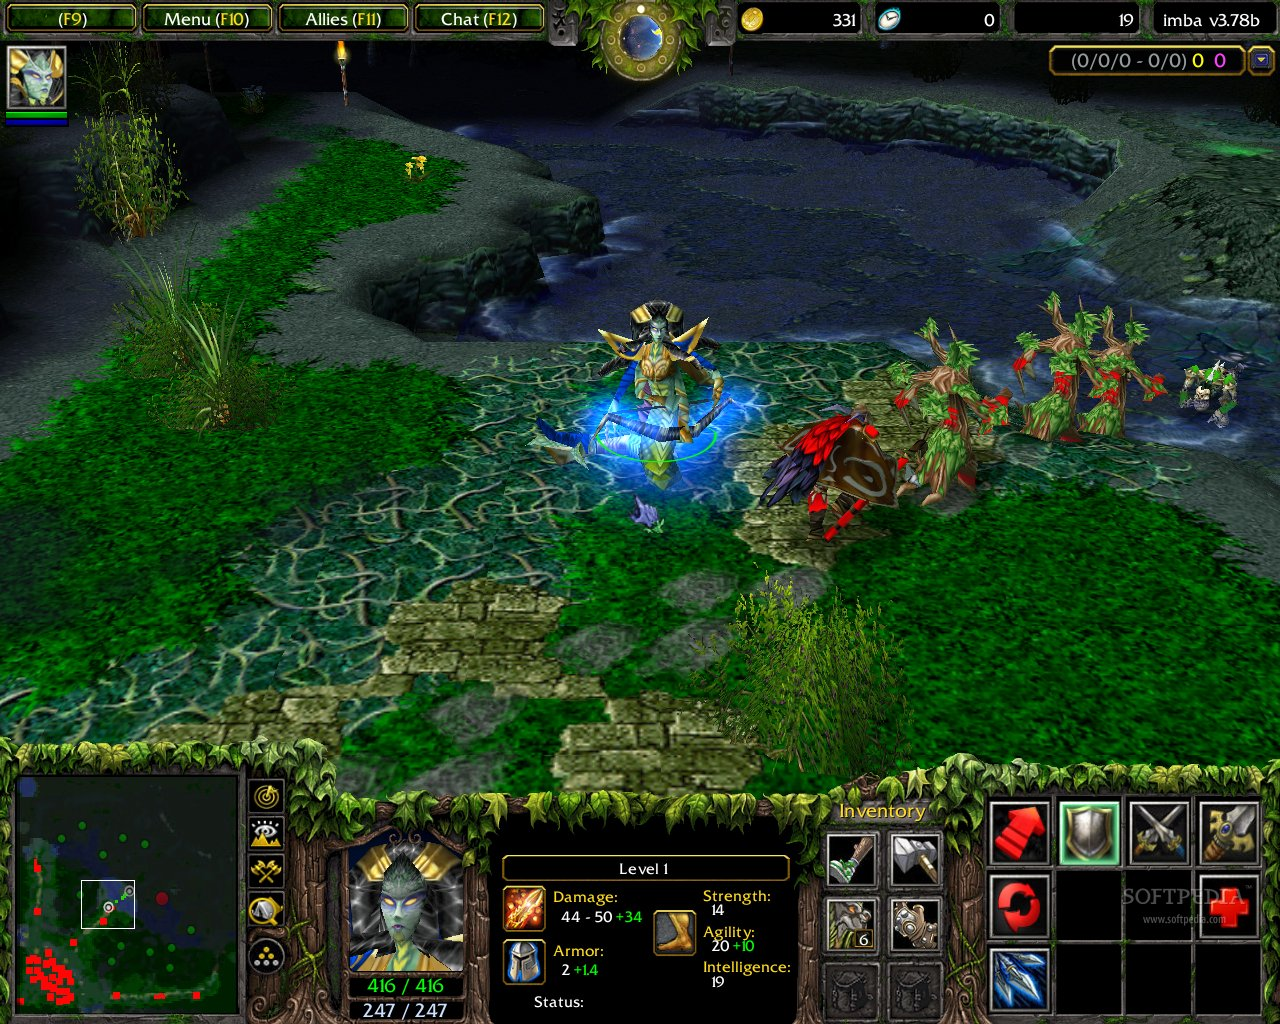 Hot s xy warcraft 3 map erotic movies